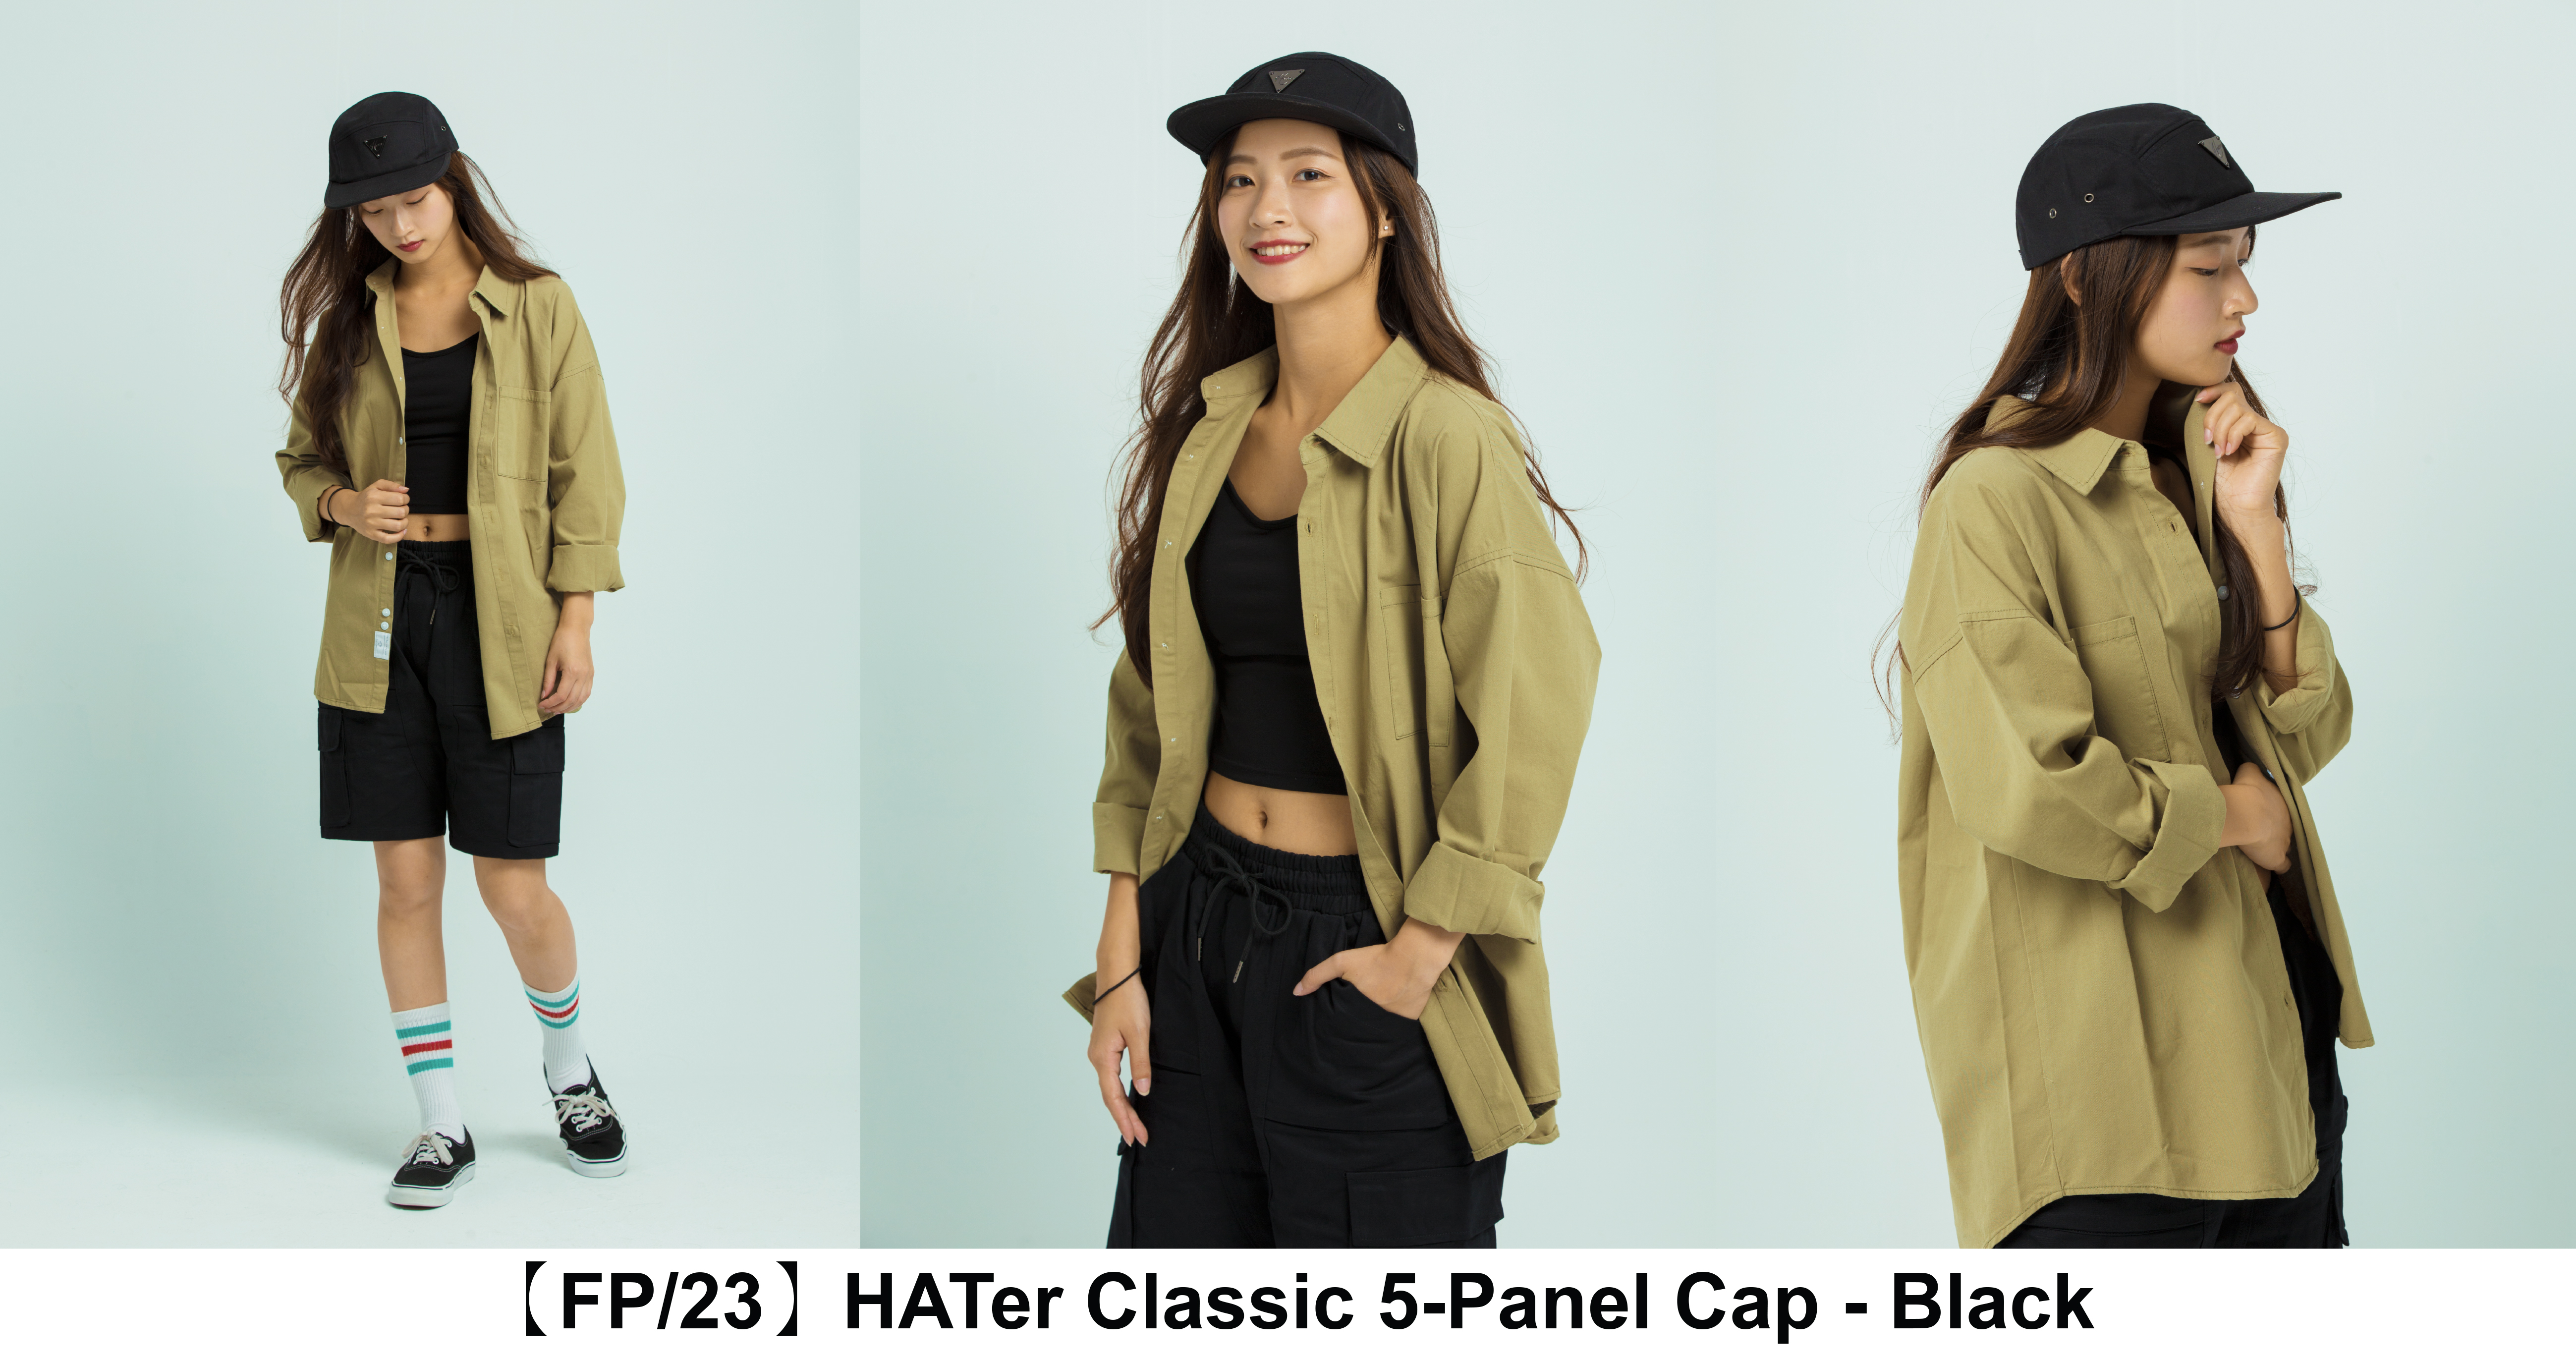 Hater Snapback - The most wanted hat | 15% off for all products